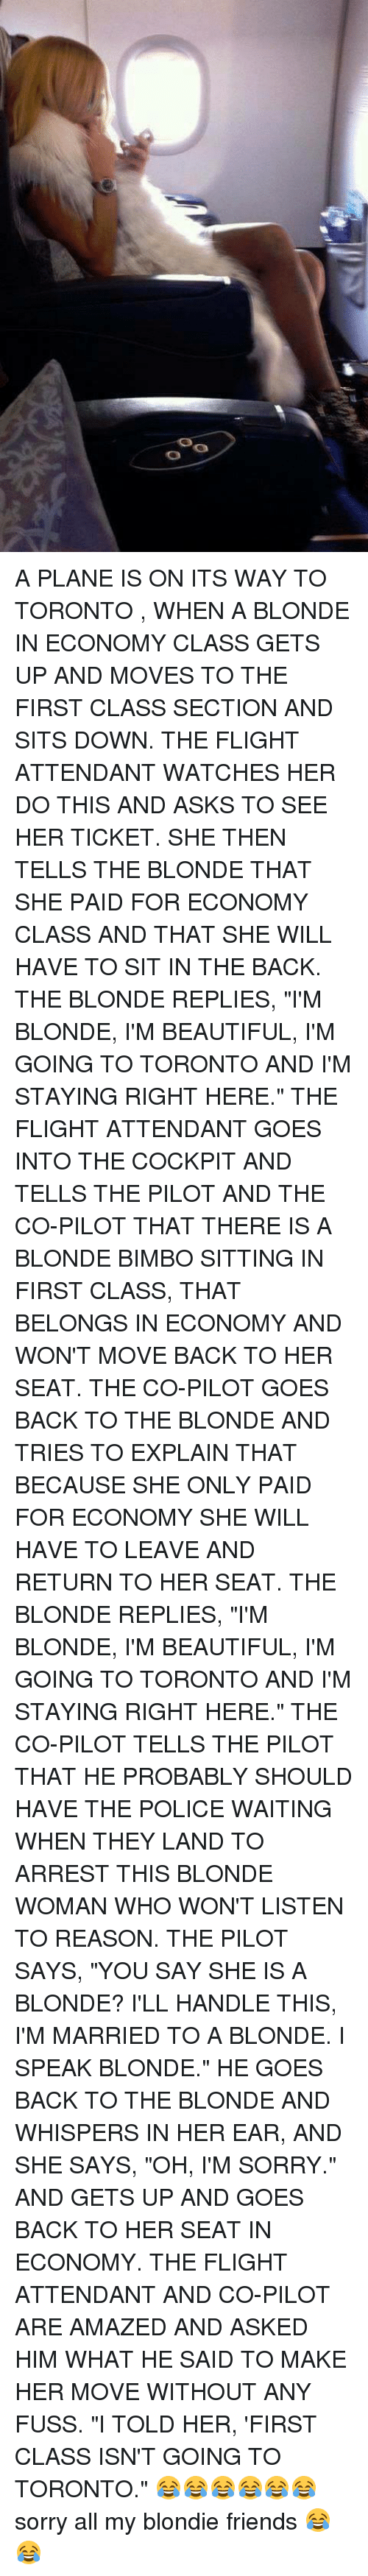 """bimbo: 0  00 A PLANE IS ON ITS WAY TO TORONTO , WHEN A BLONDE IN ECONOMY CLASS GETS UP AND MOVES TO THE FIRST CLASS SECTION AND SITS DOWN.  THE FLIGHT ATTENDANT WATCHES HER DO THIS AND ASKS TO SEE HER TICKET.  SHE THEN TELLS THE BLONDE THAT SHE PAID FOR ECONOMY CLASS AND THAT SHE WILL HAVE TO SIT IN THE BACK.  THE BLONDE REPLIES, """"I'M BLONDE, I'M BEAUTIFUL, I'M GOING TO TORONTO AND I'M STAYING RIGHT HERE.""""  THE FLIGHT ATTENDANT GOES INTO THE COCKPIT AND TELLS THE PILOT AND THE CO-PILOT THAT THERE IS A BLONDE BIMBO SITTING IN FIRST CLASS, THAT BELONGS IN ECONOMY AND WON'T MOVE BACK TO HER SEAT.  THE CO-PILOT GOES BACK TO THE BLONDE AND TRIES TO EXPLAIN THAT BECAUSE SHE ONLY PAID FOR ECONOMY SHE WILL HAVE TO LEAVE AND RETURN TO HER SEAT.  THE BLONDE REPLIES, """"I'M BLONDE, I'M BEAUTIFUL, I'M GOING TO TORONTO AND I'M STAYING RIGHT HERE.""""  THE CO-PILOT TELLS THE PILOT THAT HE PROBABLY SHOULD HAVE THE POLICE WAITING WHEN THEY LAND TO ARREST THIS BLONDE WOMAN WHO WON'T LISTEN TO REASON.  THE PILOT SAYS, """"YOU SAY SHE IS A BLONDE? I'LL HANDLE THIS, I'M MARRIED TO A BLONDE. I SPEAK BLONDE.""""  HE GOES BACK TO THE BLONDE AND WHISPERS IN HER EAR, AND SHE SAYS, """"OH, I'M SORRY."""" AND GETS UP AND GOES BACK TO HER SEAT IN ECONOMY.  THE FLIGHT ATTENDANT AND CO-PILOT ARE AMAZED AND ASKED HIM WHAT HE SAID TO MAKE HER MOVE WITHOUT ANY FUSS.  """"I TOLD HER, 'FIRST CLASS ISN'T GOING TO TORONTO."""" 😂😂😂😂😂😂 sorry all my blondie friends 😂😂"""